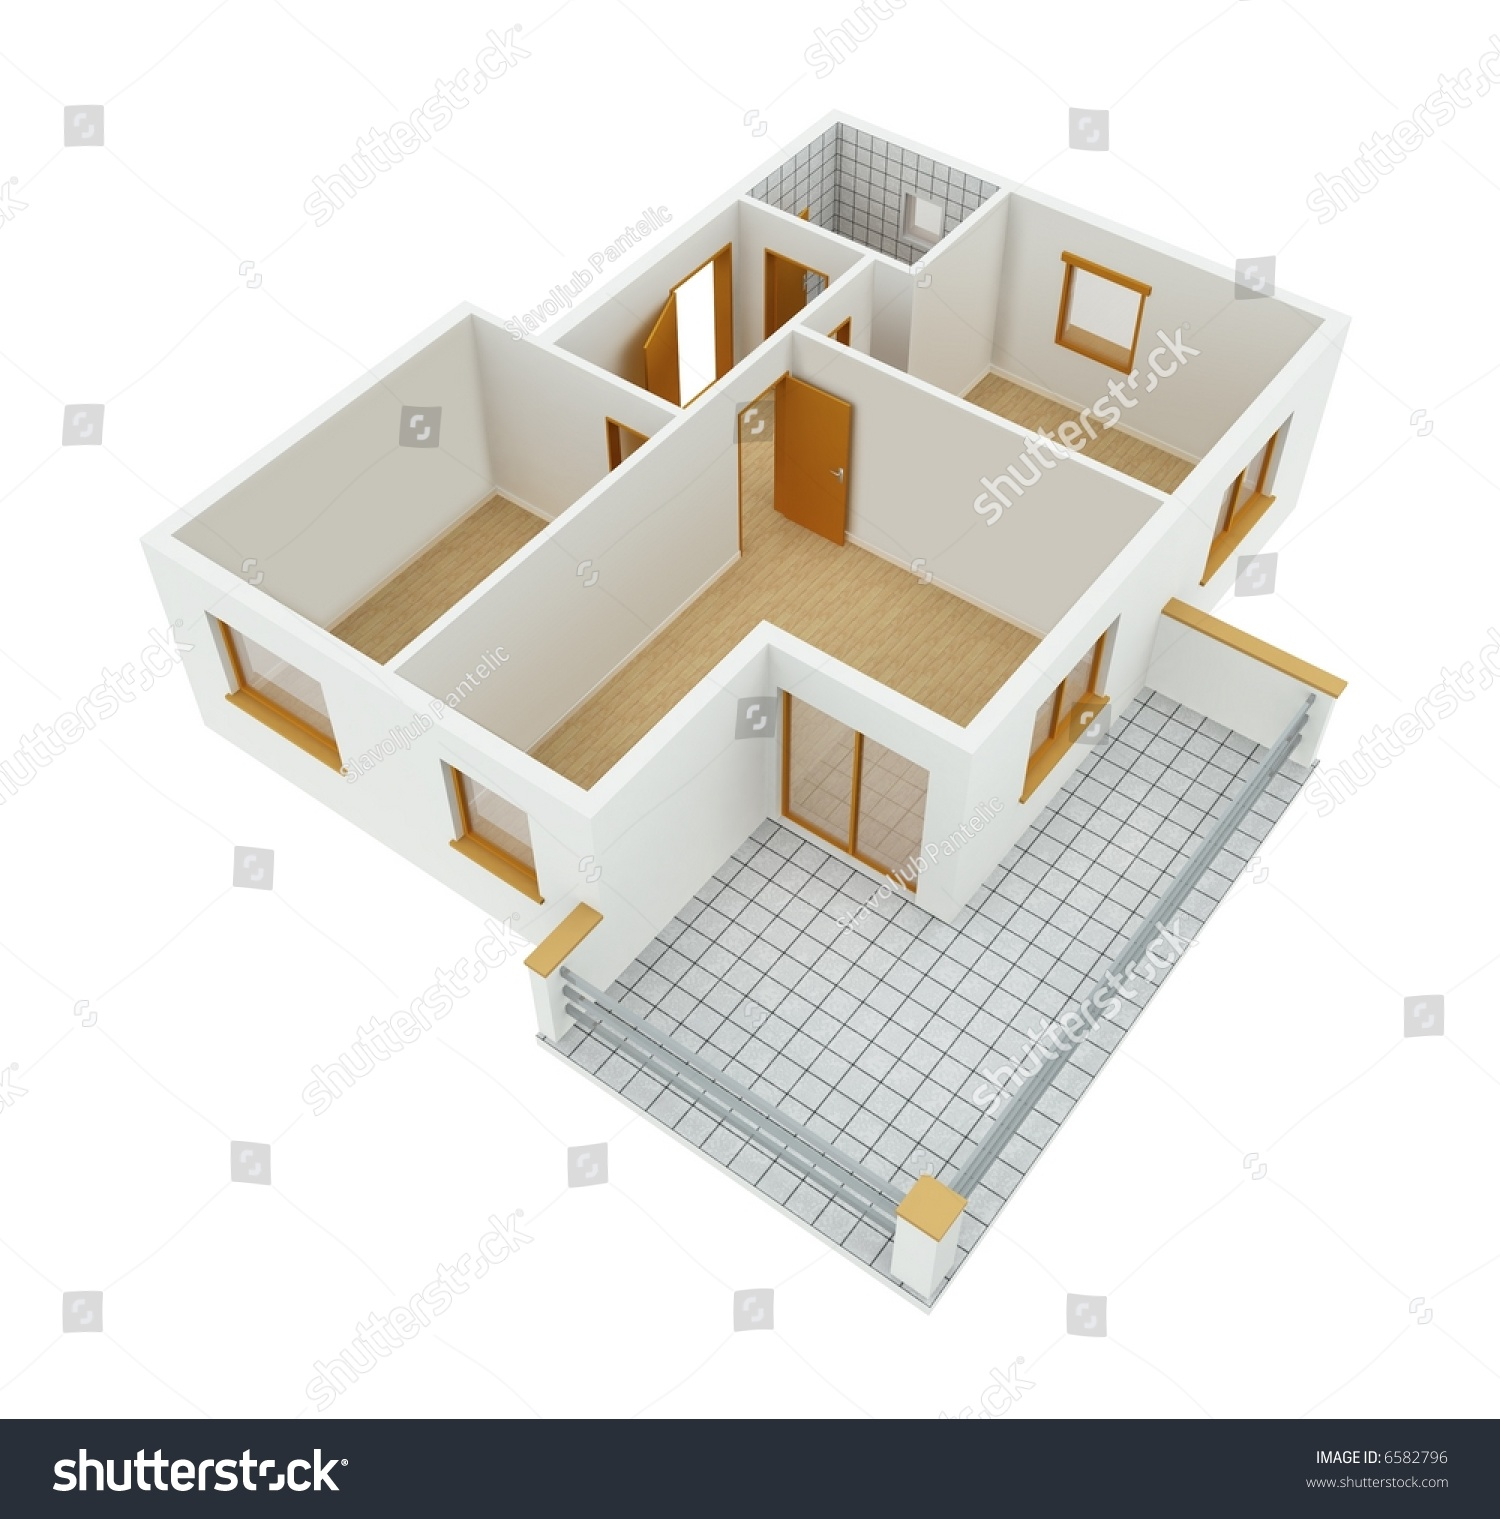 3d new apartment floor plan stock photo 6582796 shutterstock for Apartment stock plans